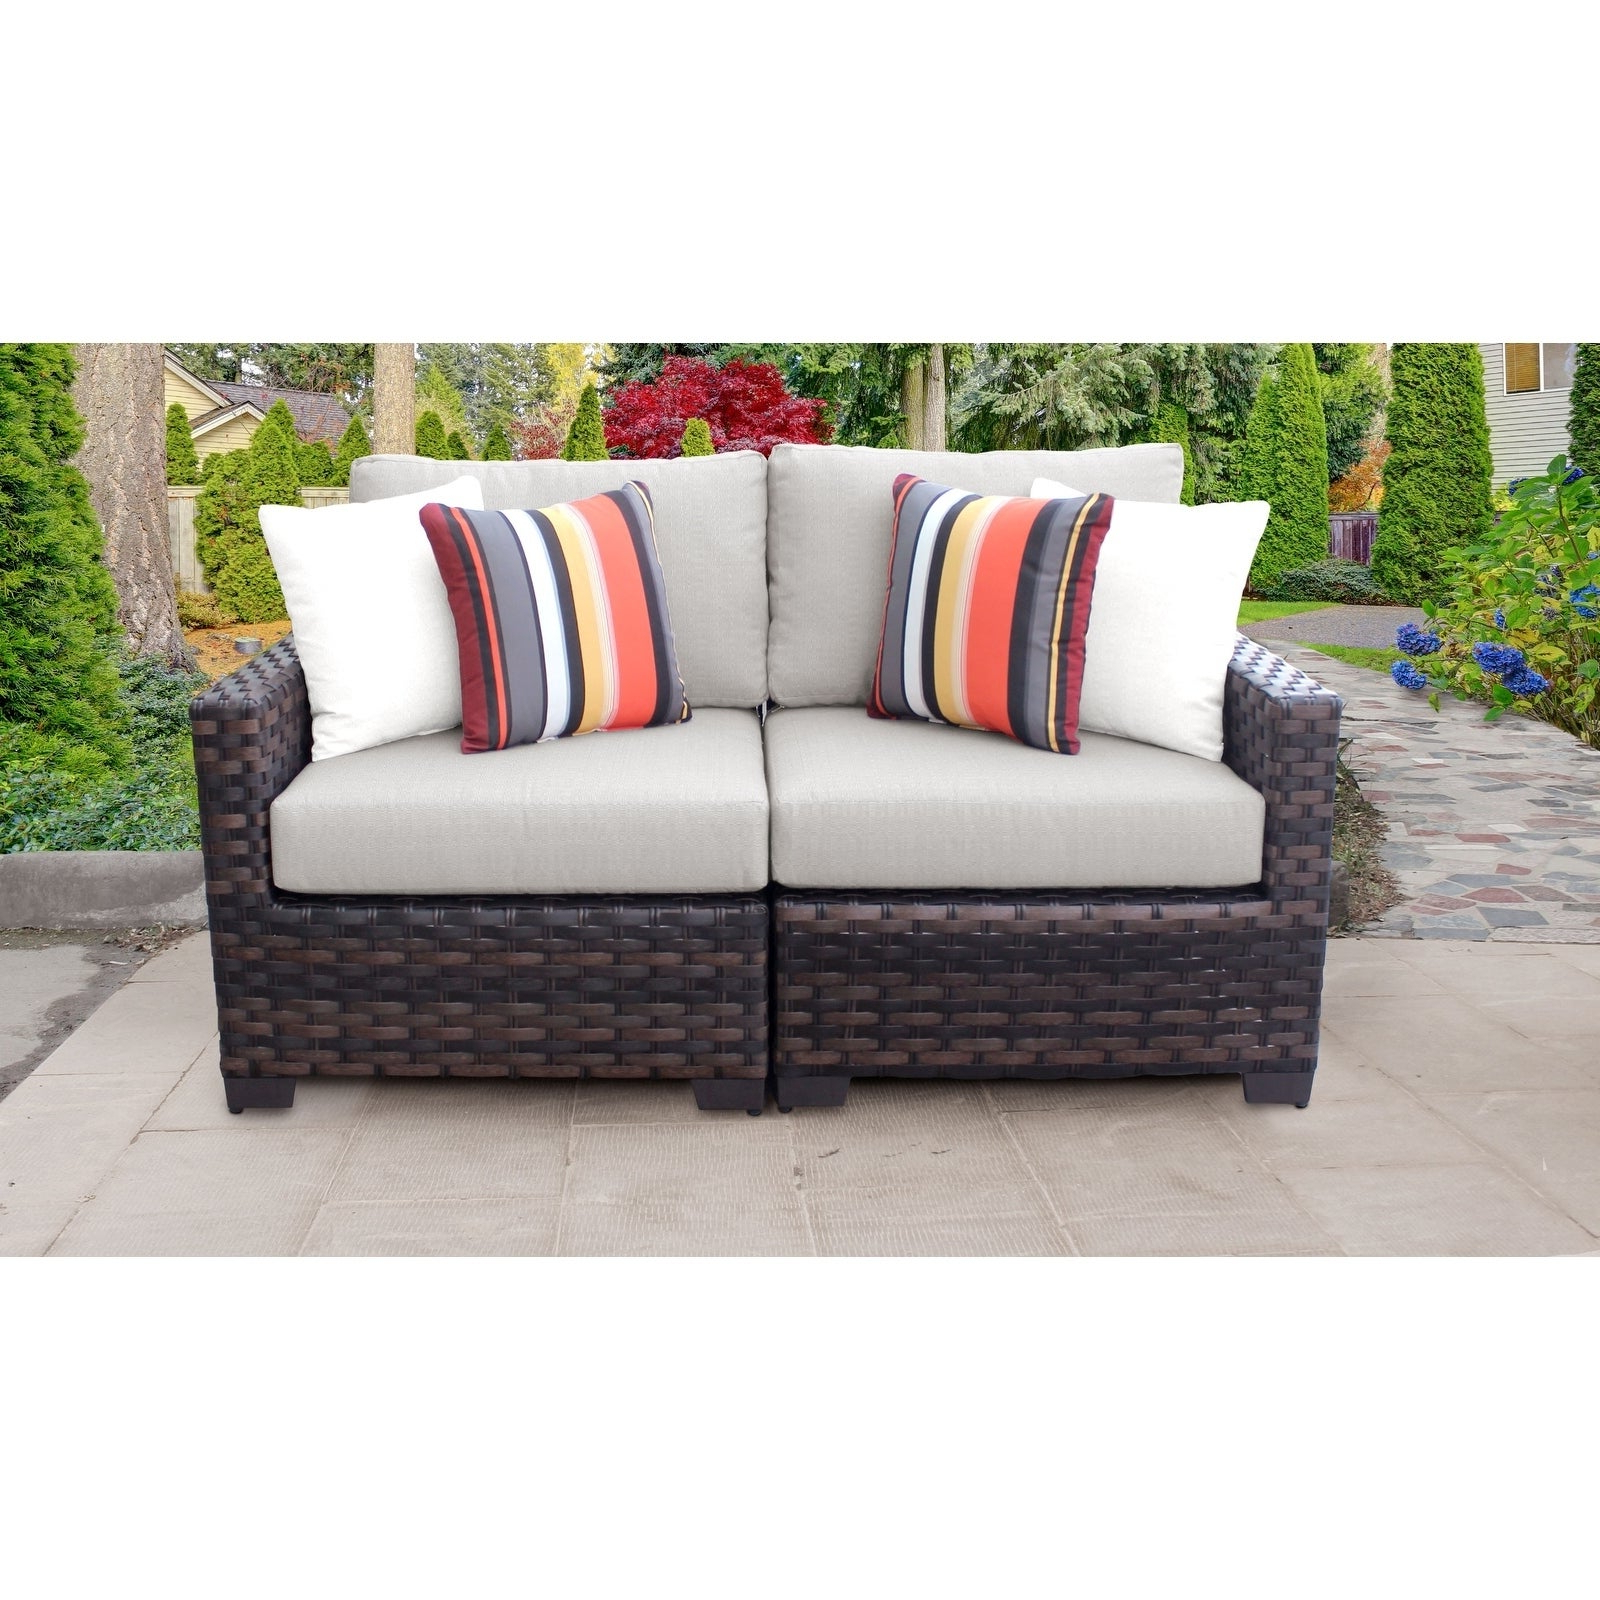 Oreland Patio Sofas With Cushions Pertaining To Most Recent Kathy Ireland River Brook 2 Piece Outdoor Wicker Patio Furniture Set 02a (View 20 of 20)